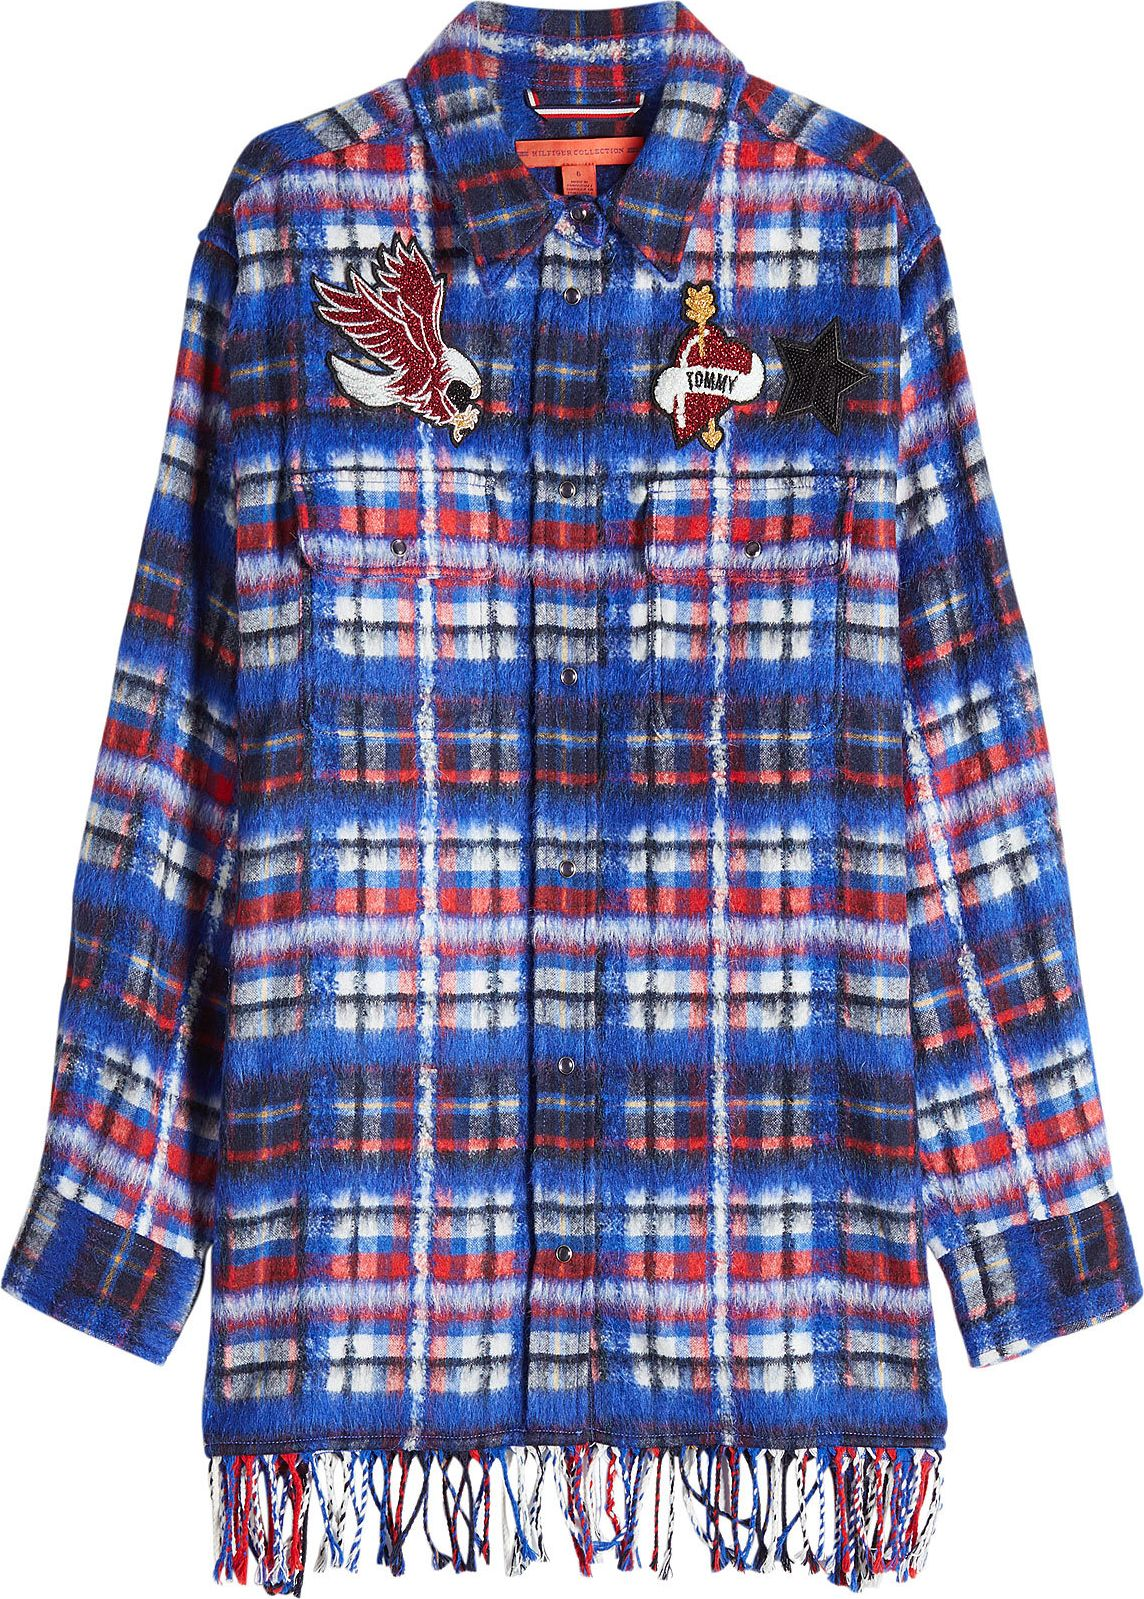 Hilfiger Collection - Printed Shirt with Appliqués